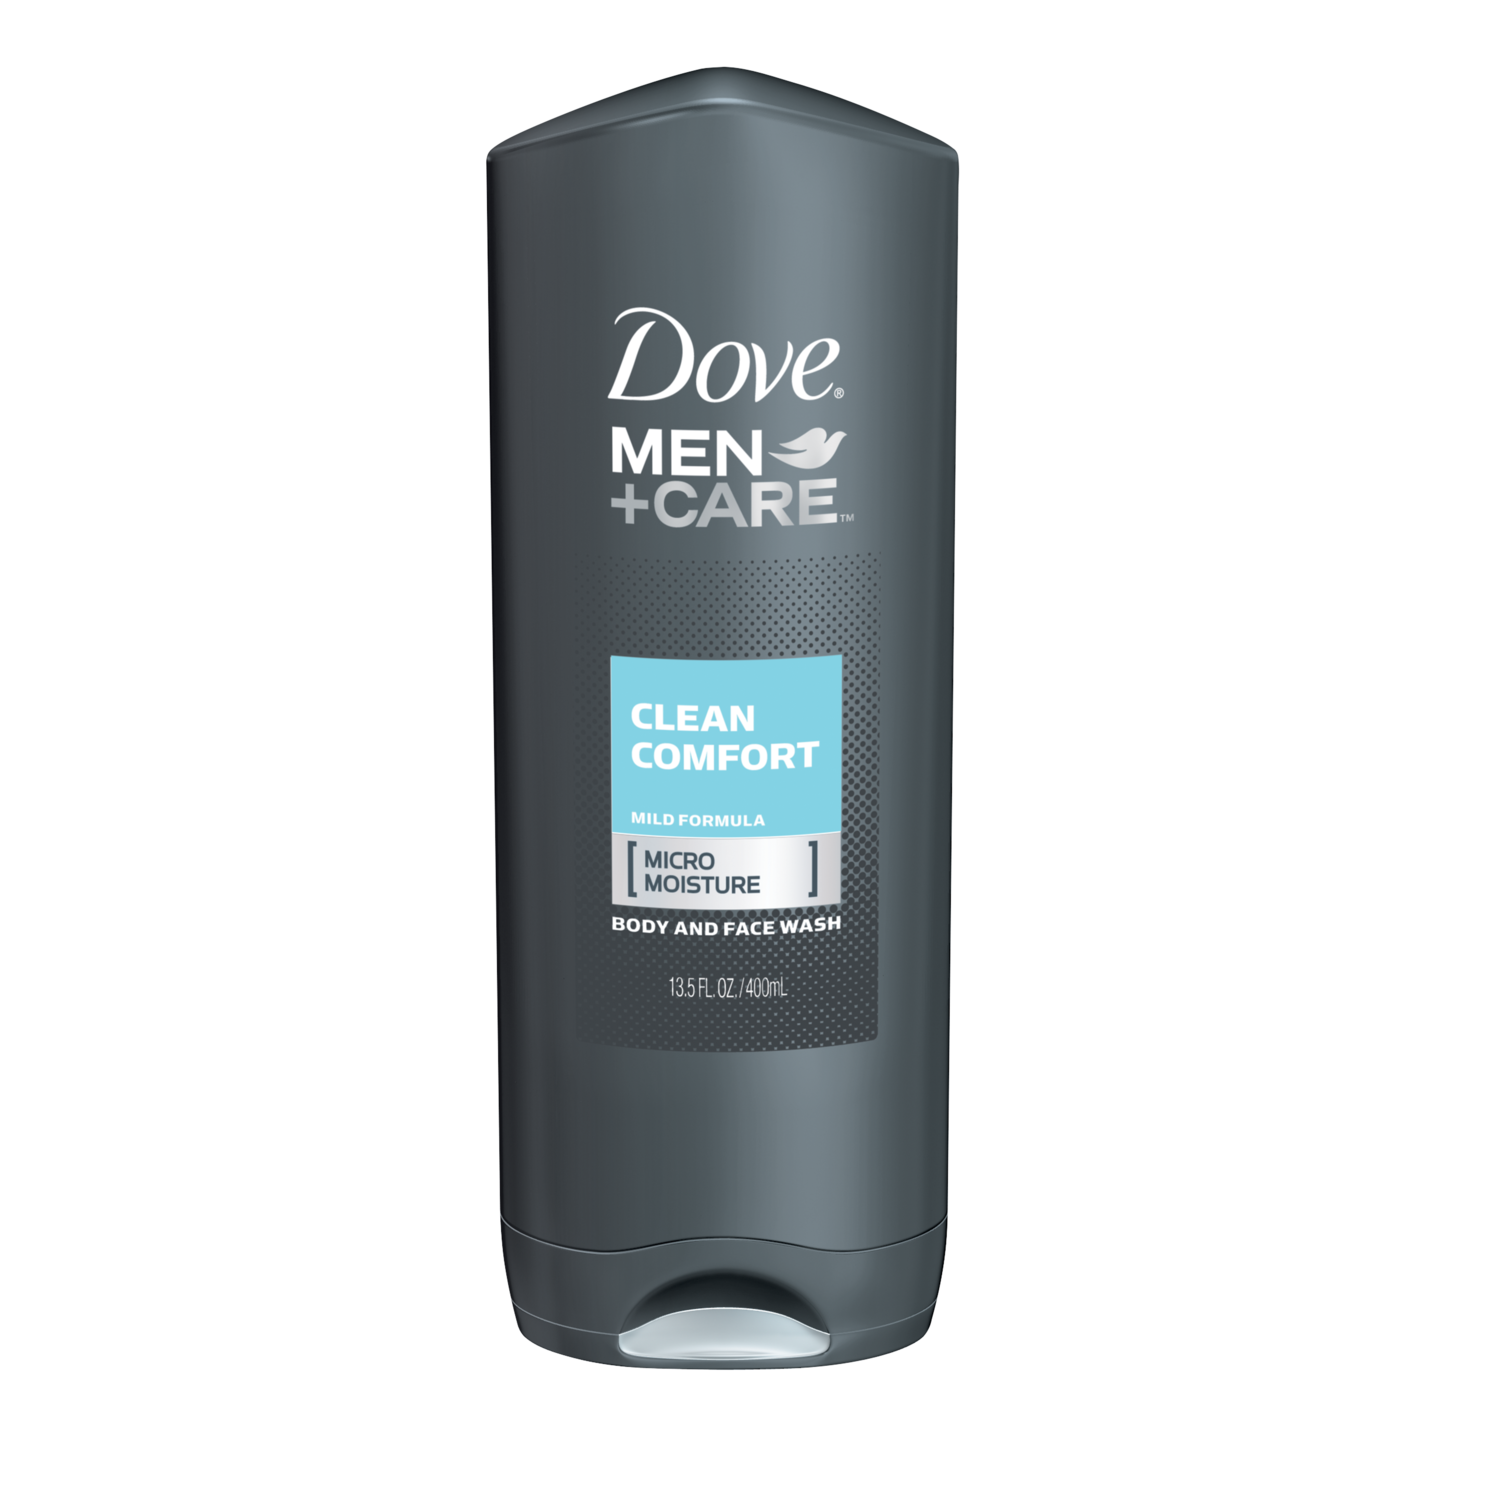 Dove Men+Care Clean Comfort Body and Face Wash